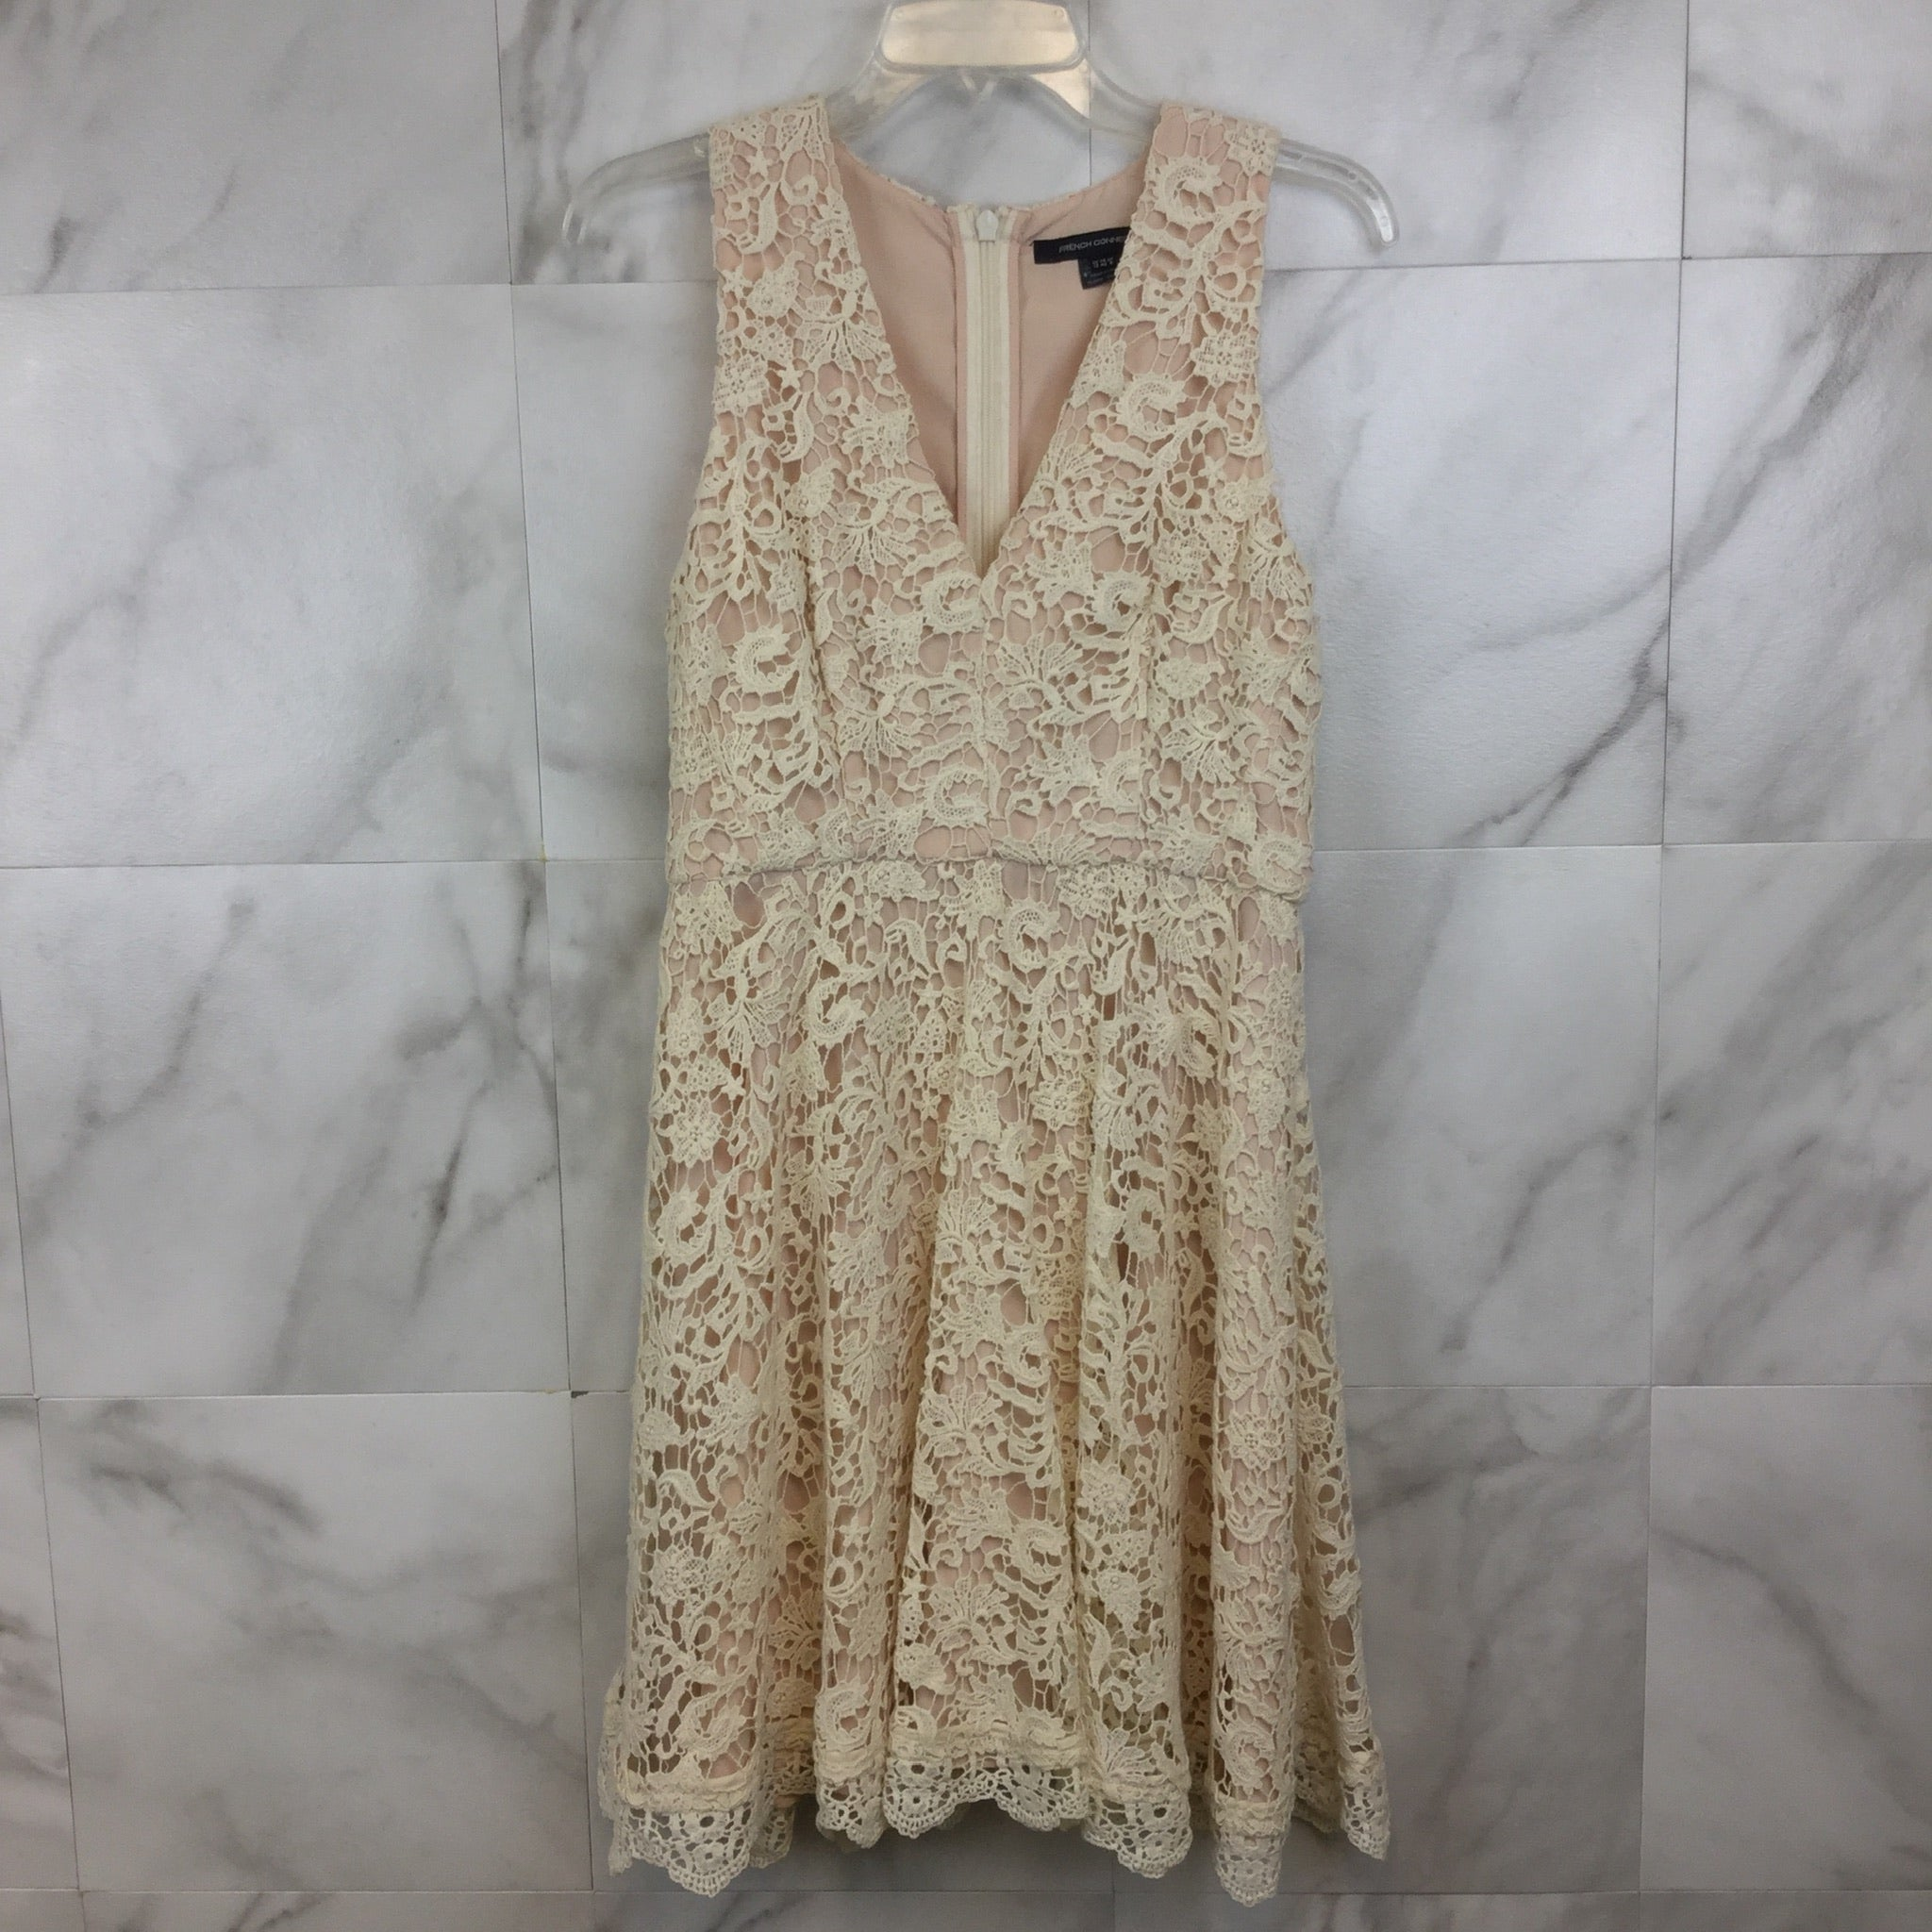 French Connection Natural Aline Crochet Dress- size 8